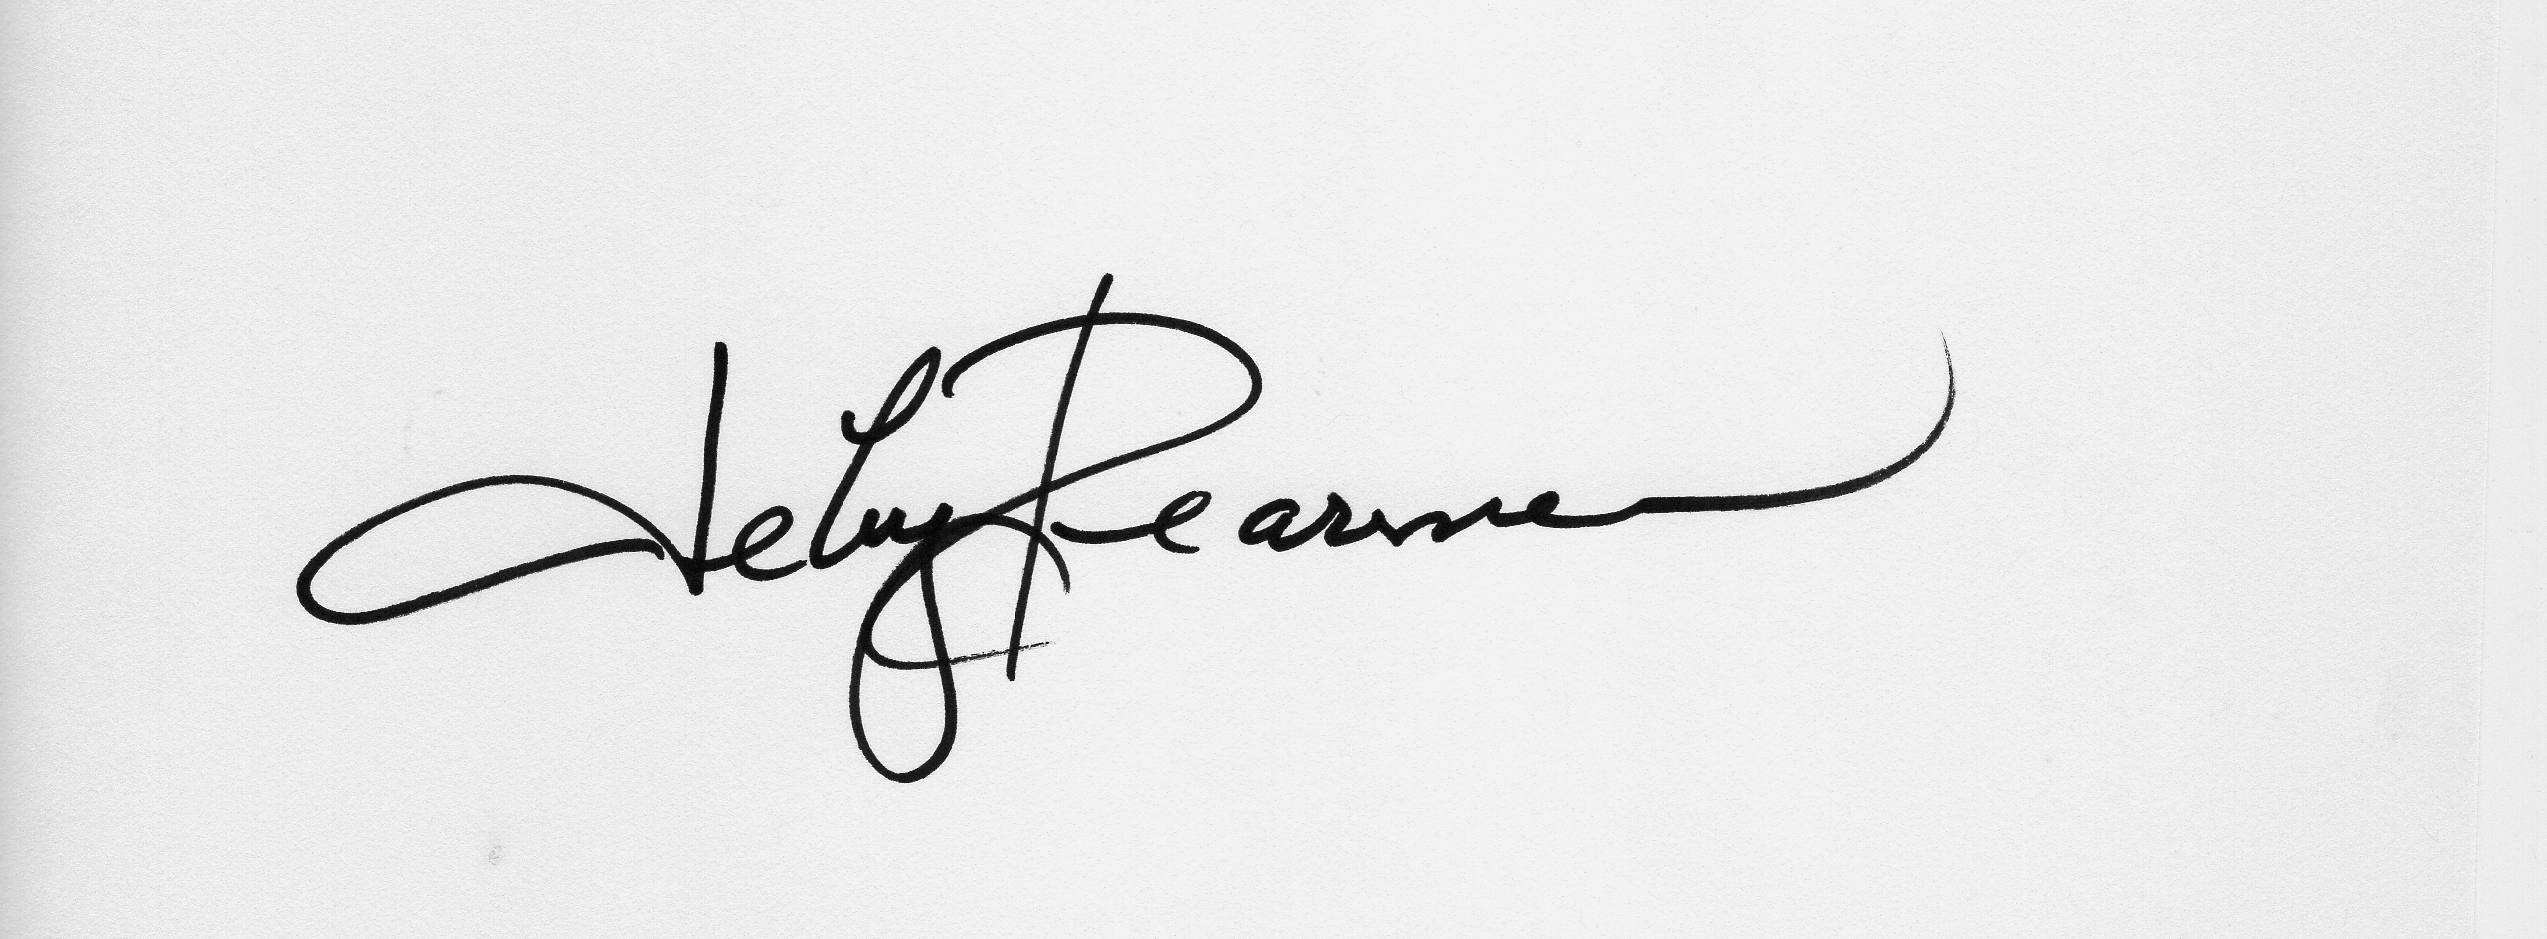 Deby Dearman Signature